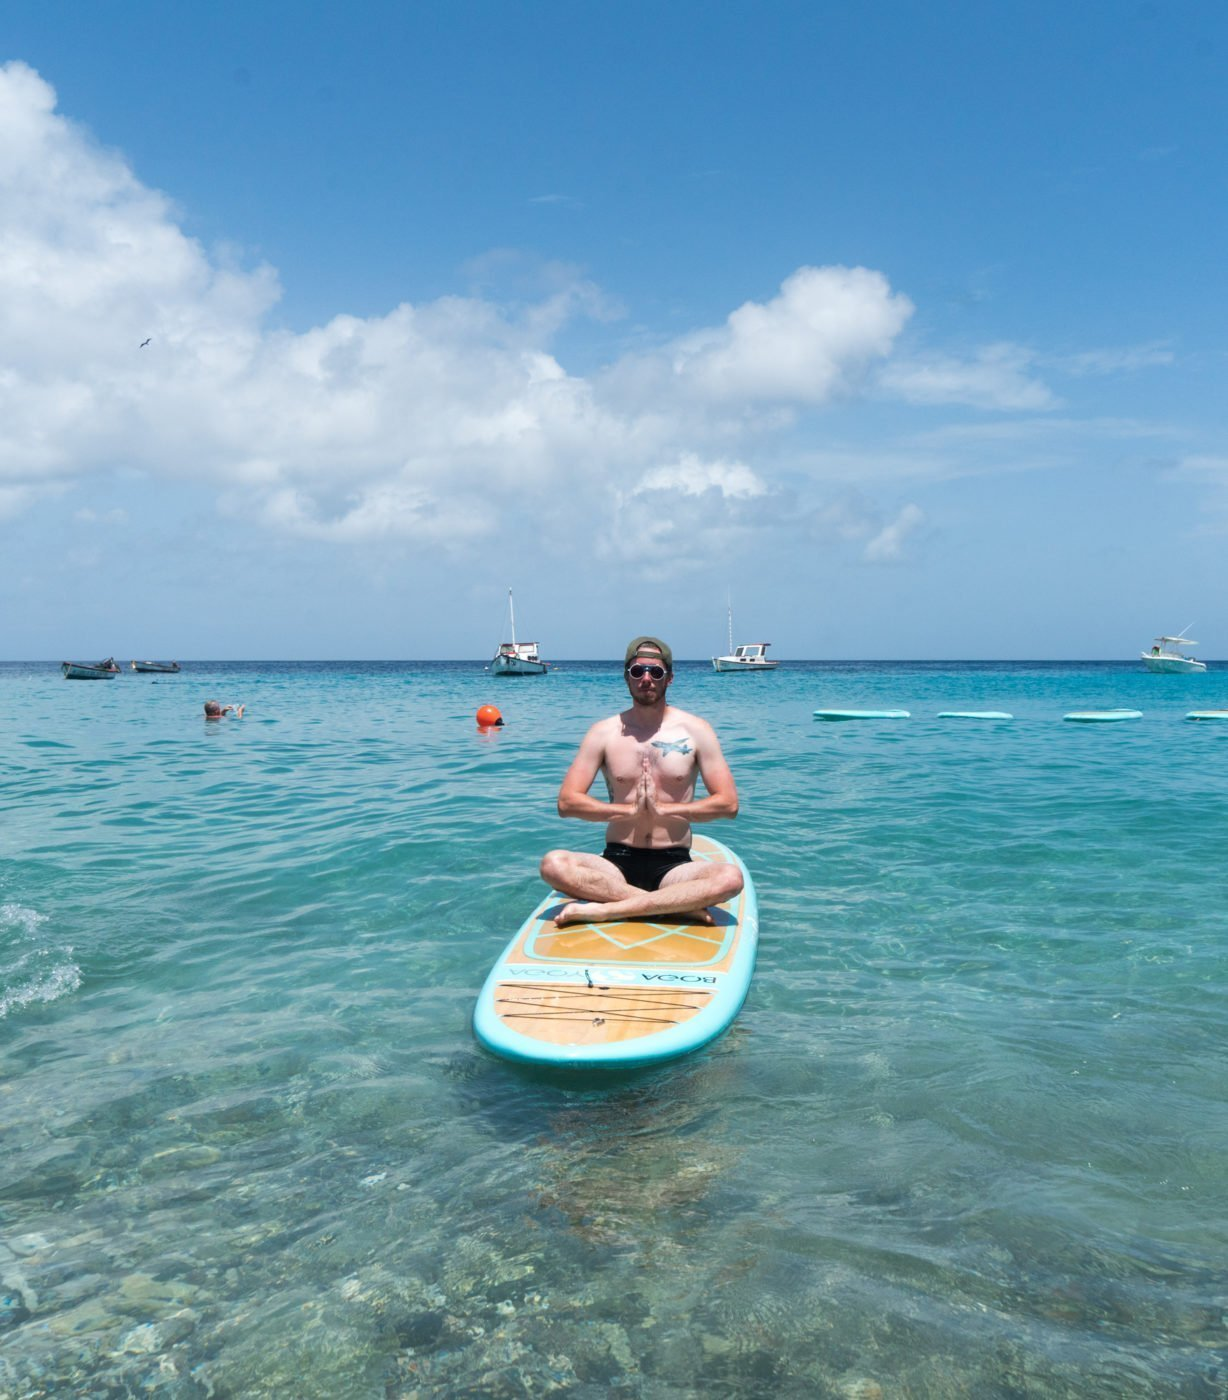 Me doing SUP Yoga with Dushi Sup in Curaçao. Boga yoga boards